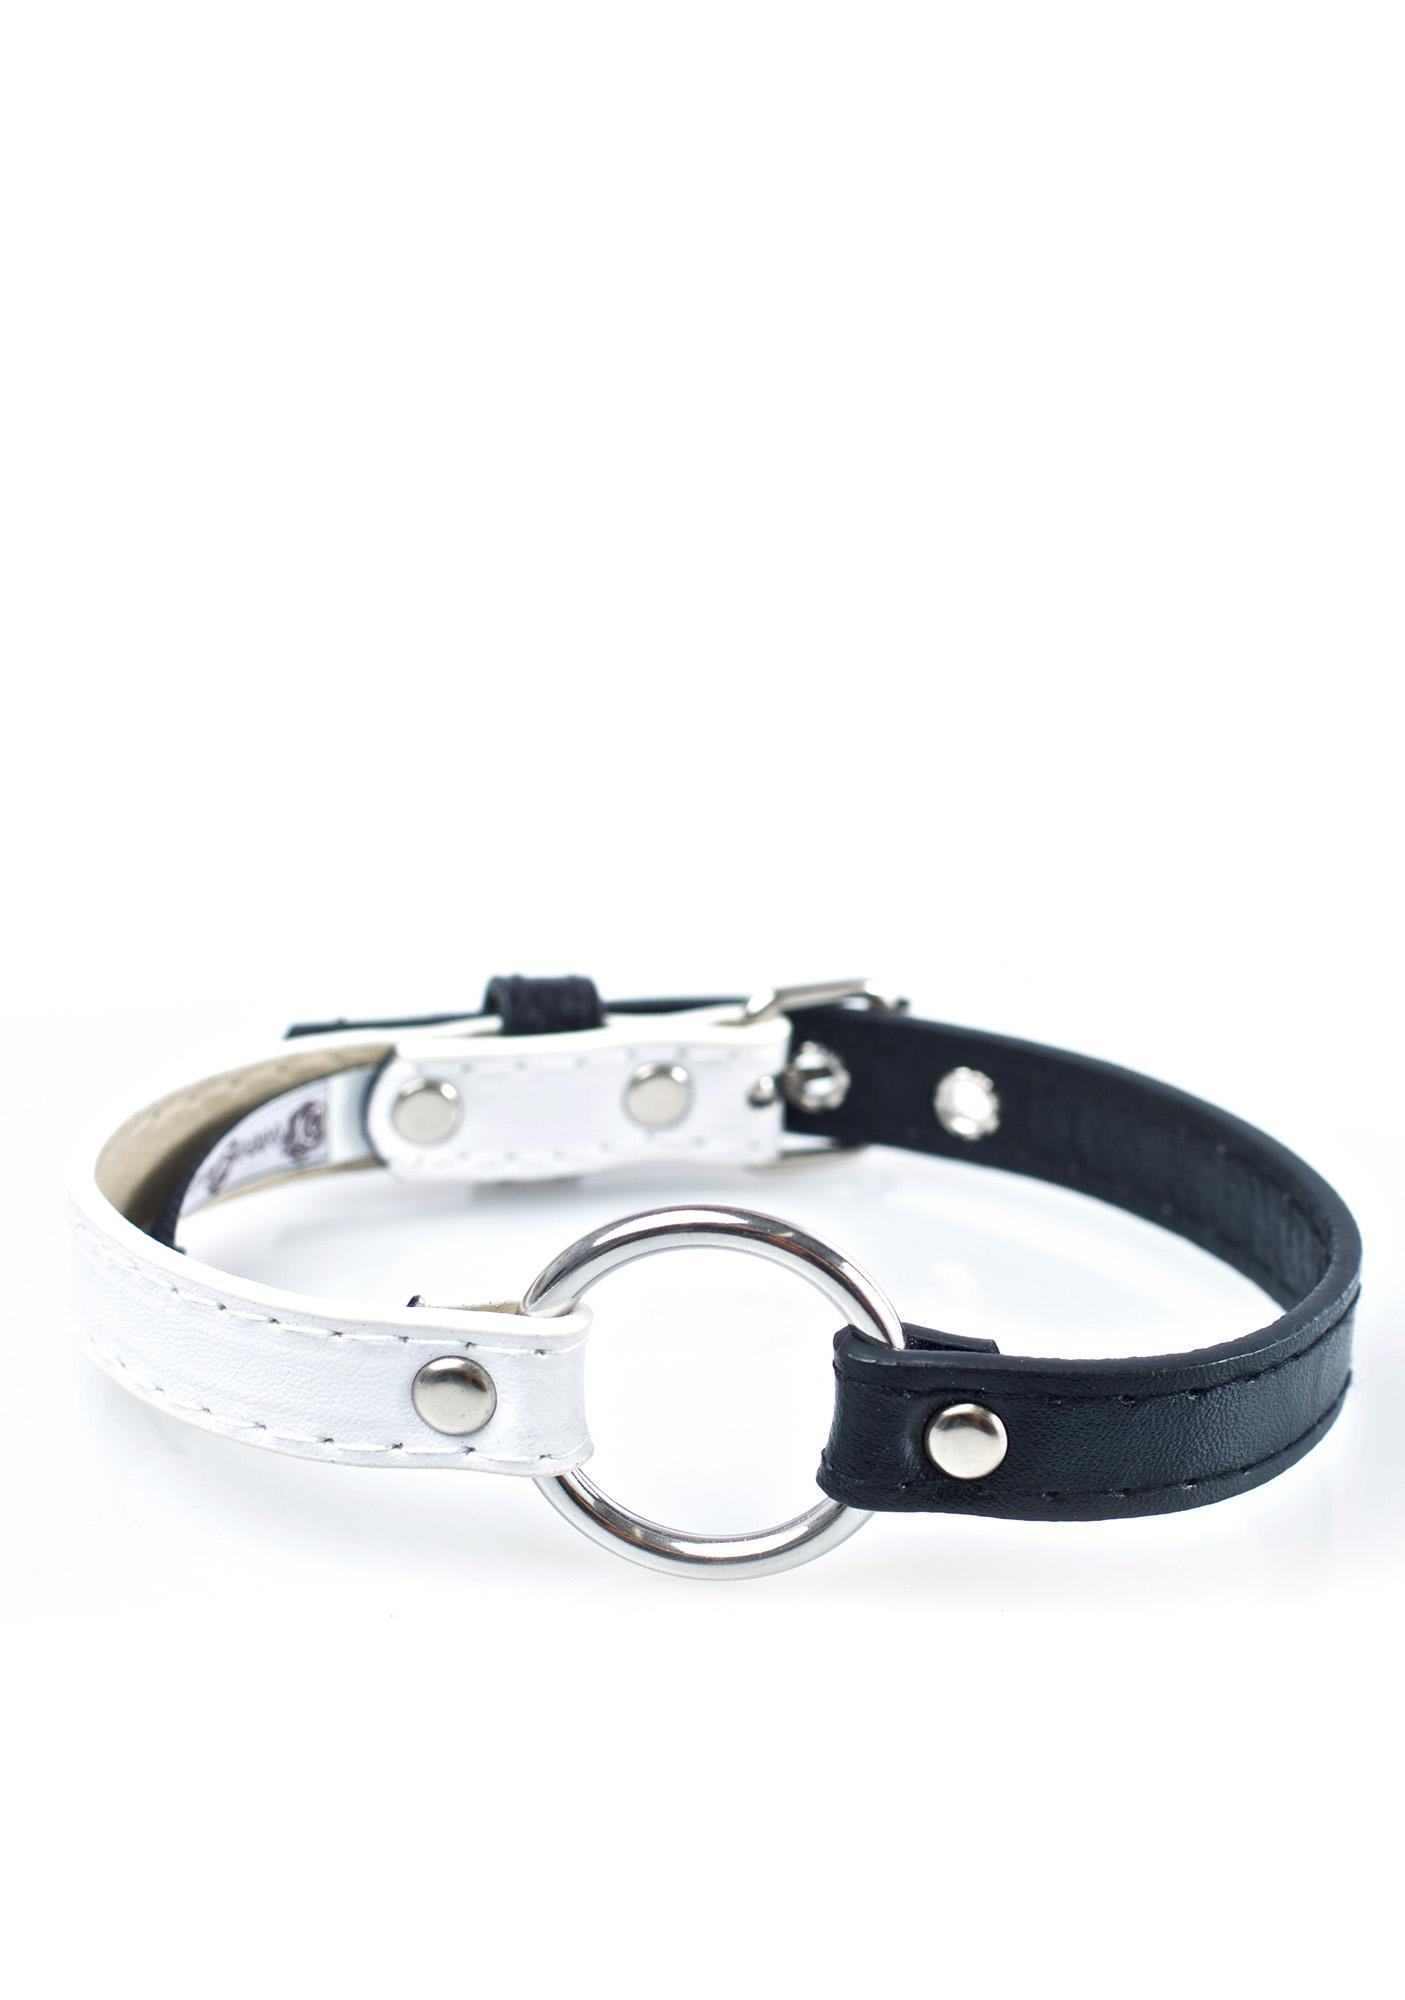 NecroLeather Cruella Faux Leather Choker